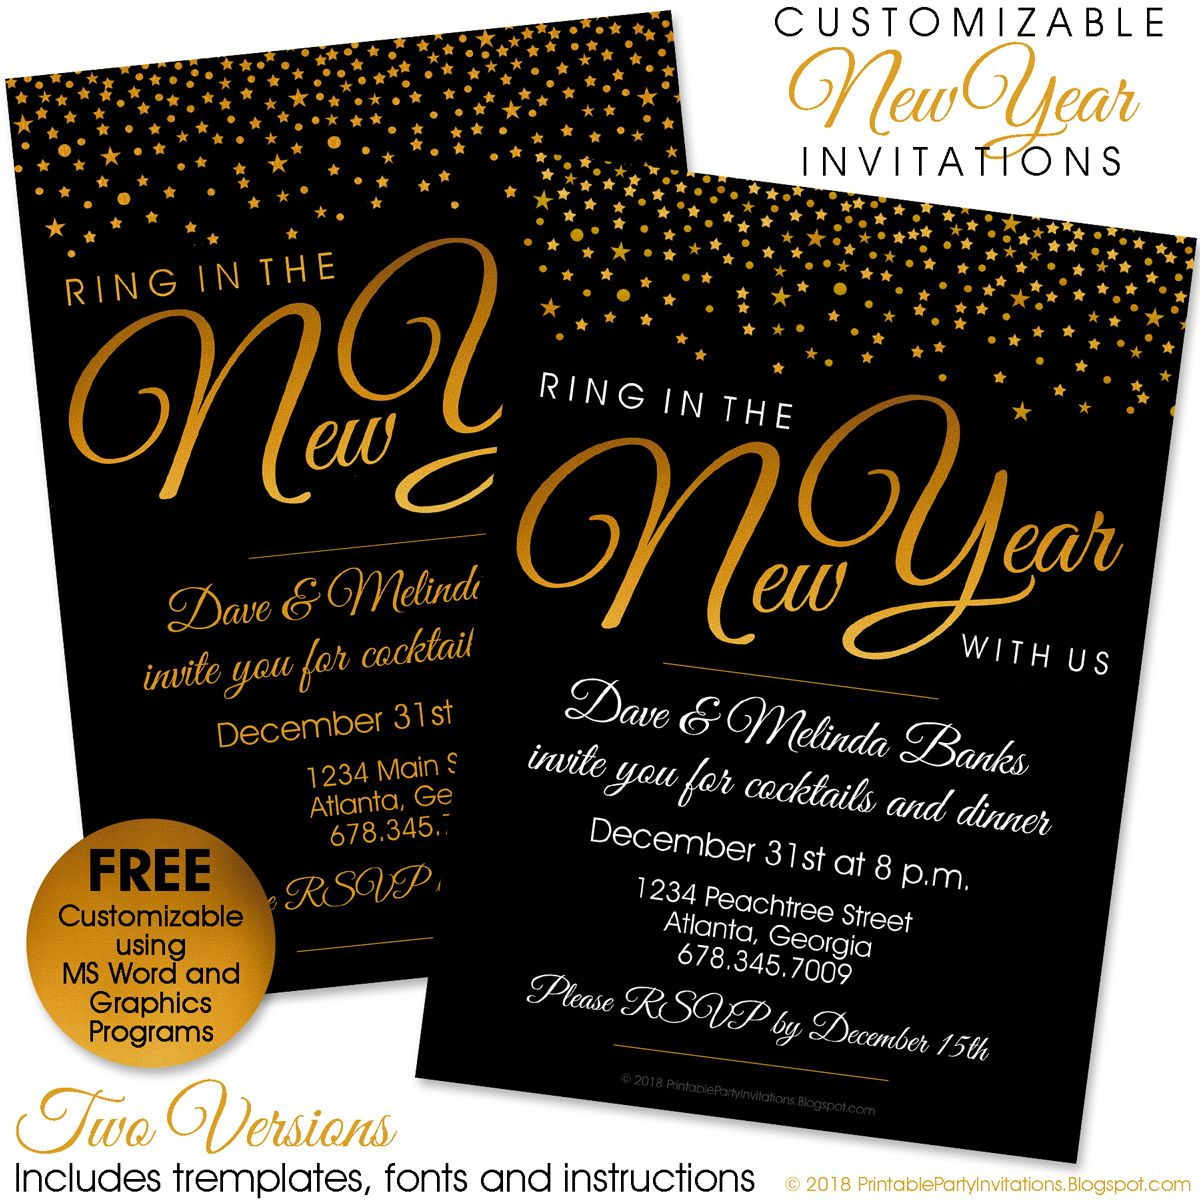 FREE printable New Year's Eve invitation kit with two free